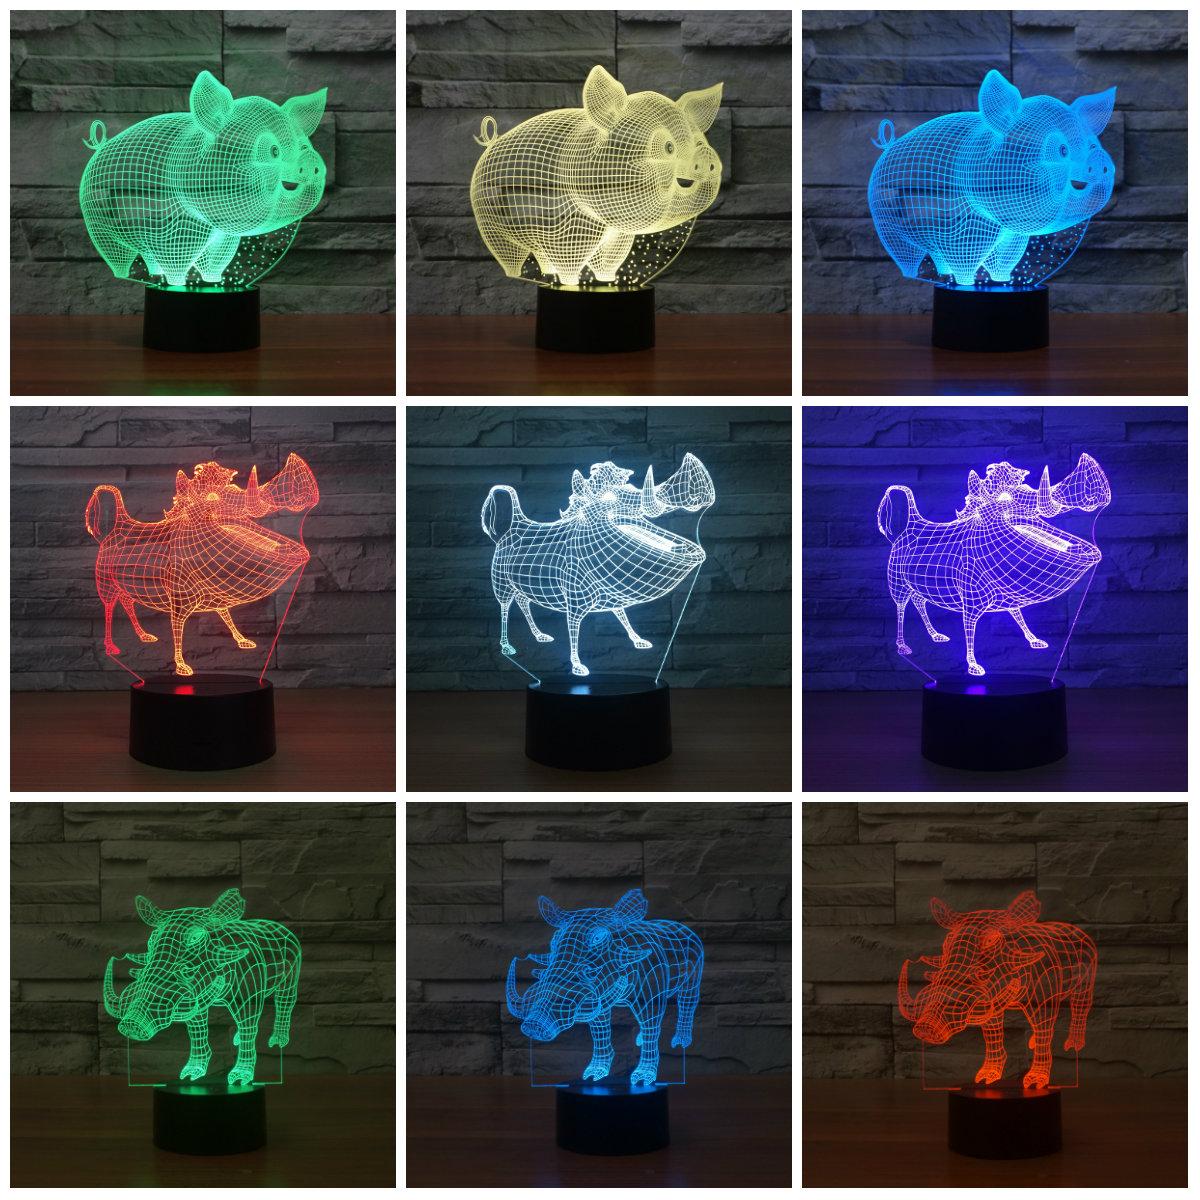 Lovely Pig Night Light Pig 3D Lamp Bulbing Touch Swithc Colorful Desk 7 Colore Change USB Table Desk Nightlight for Kid IY803607